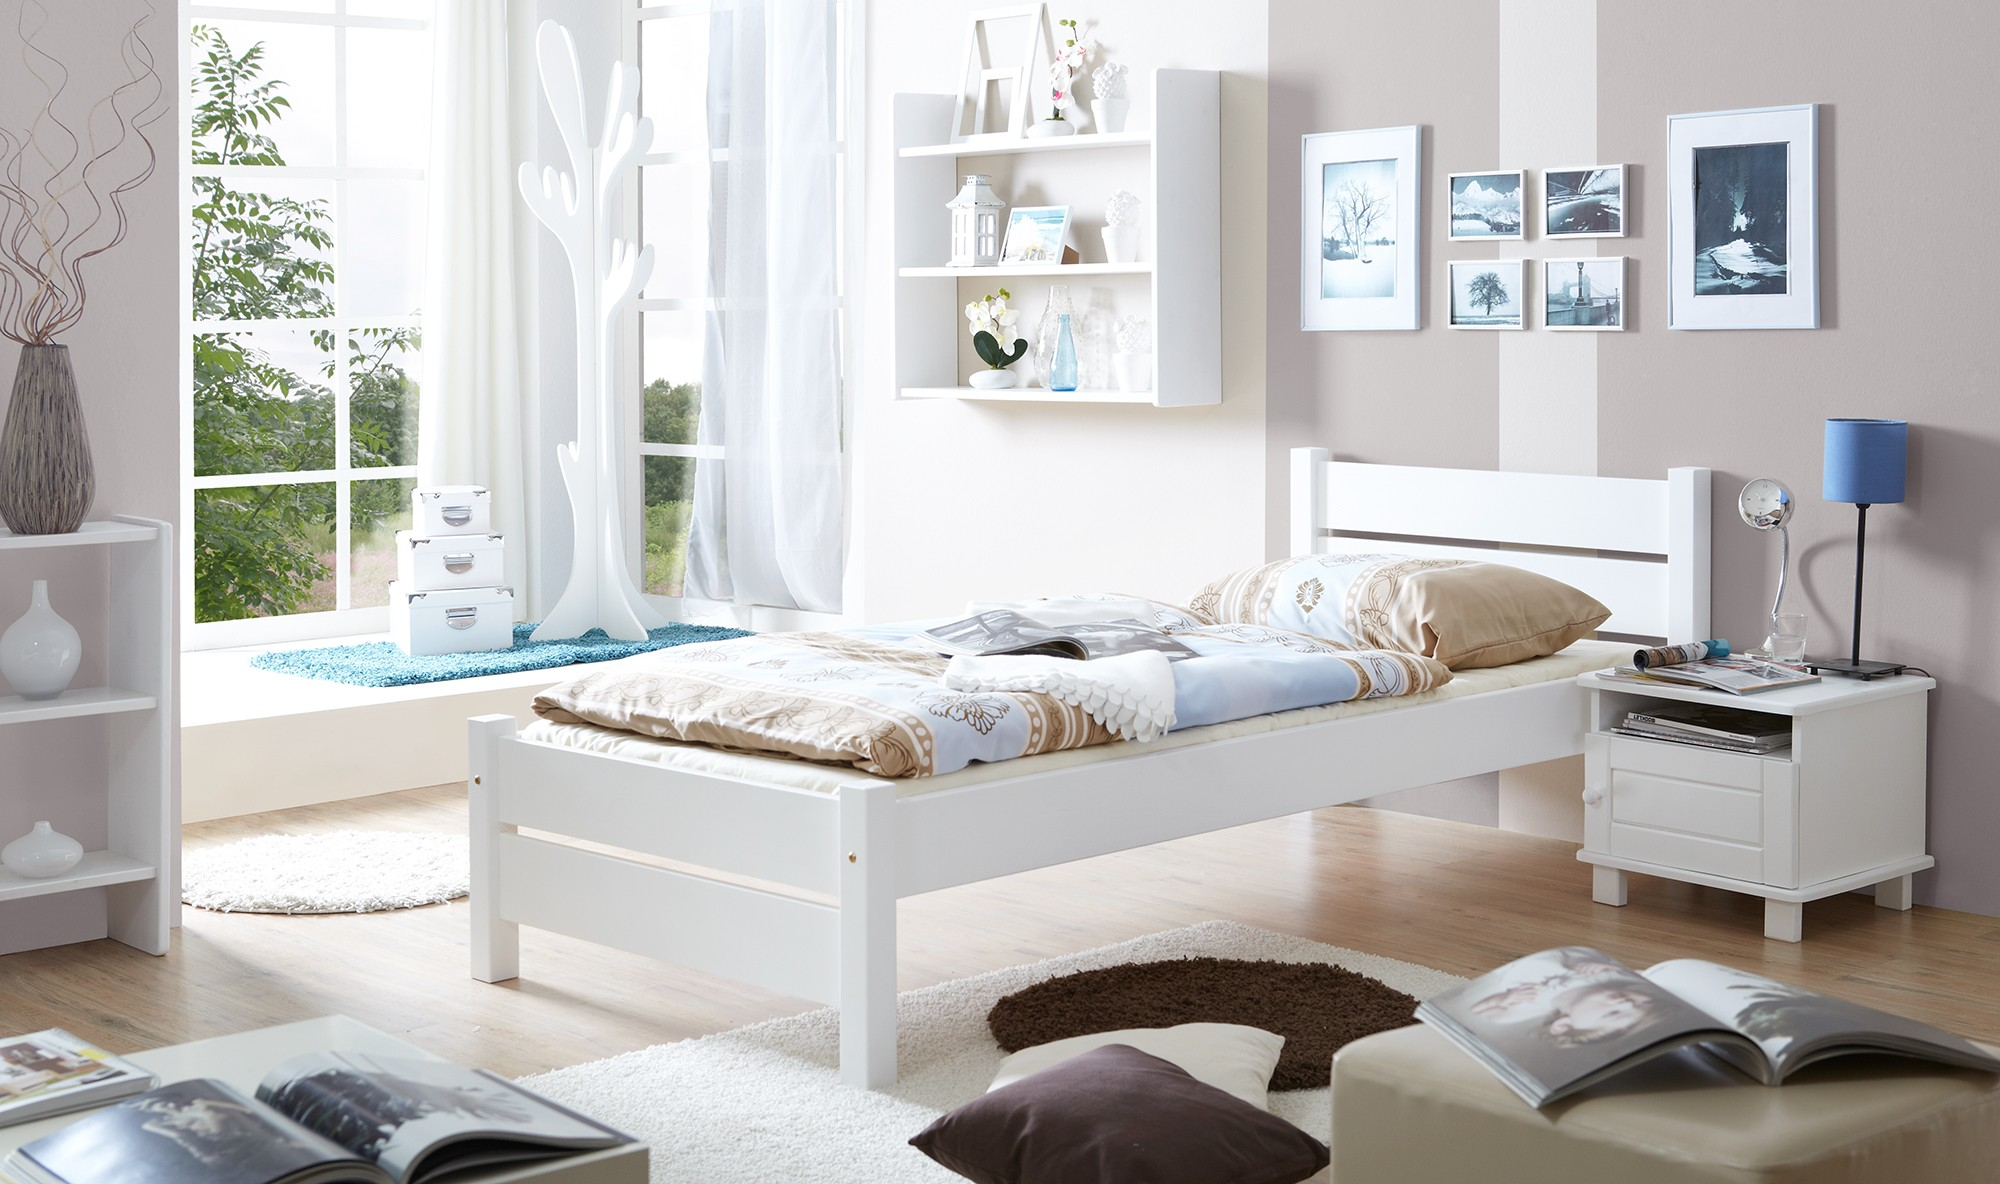 einzelbett 100x200 kiefer weiss h c m bel. Black Bedroom Furniture Sets. Home Design Ideas